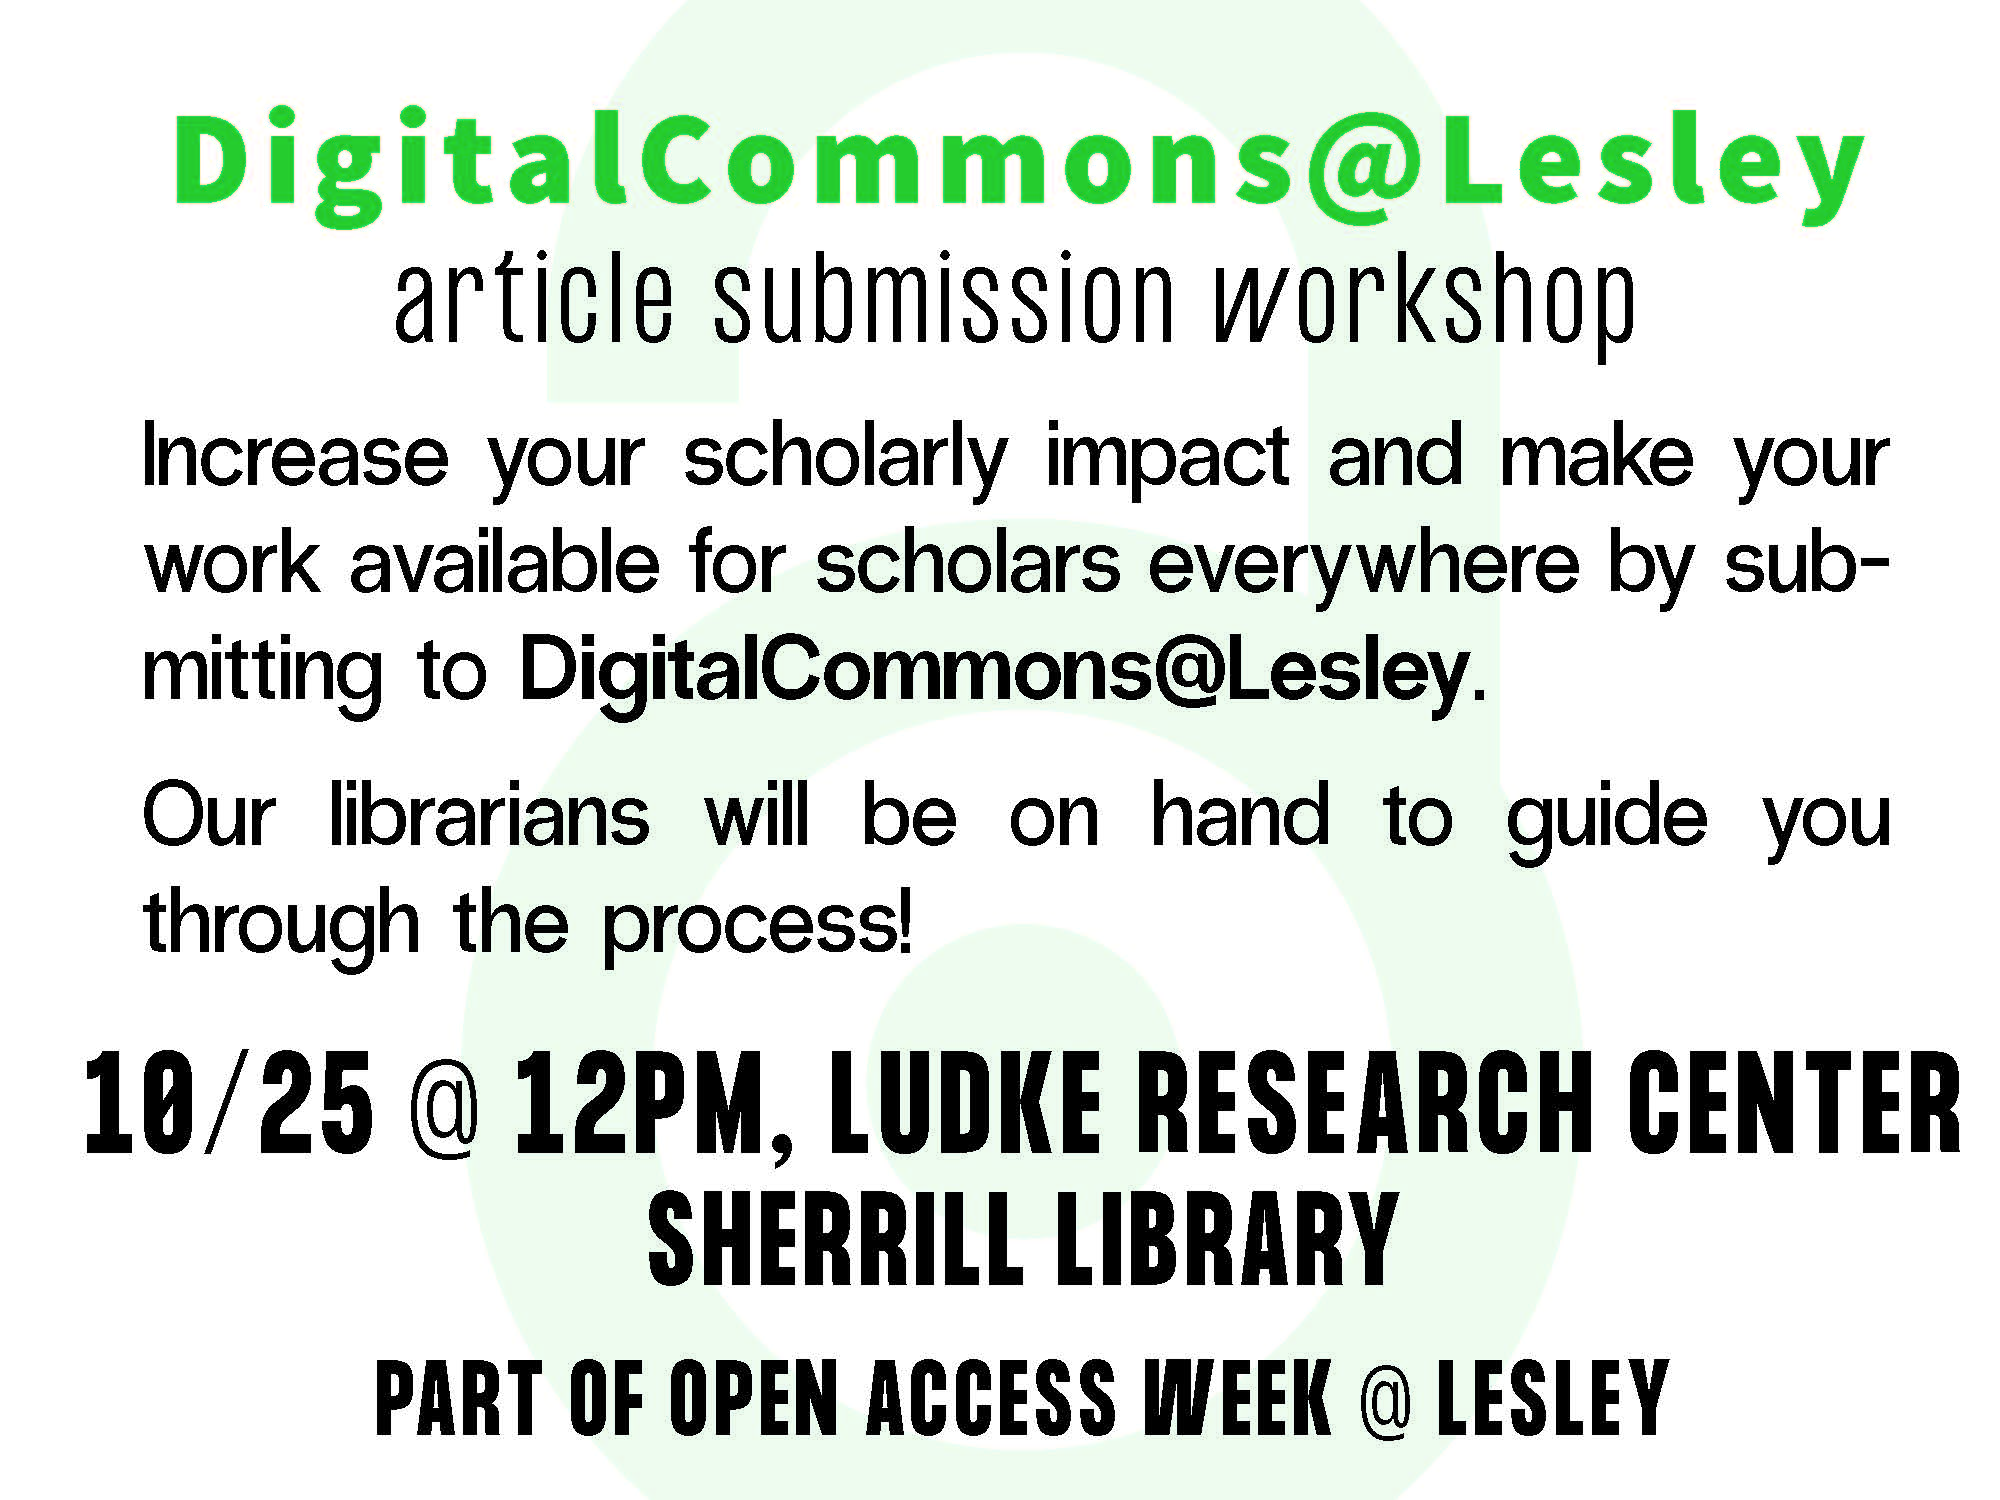 Event info for DigitalCommons@Lesley article submission workshop happening October 25 at noon